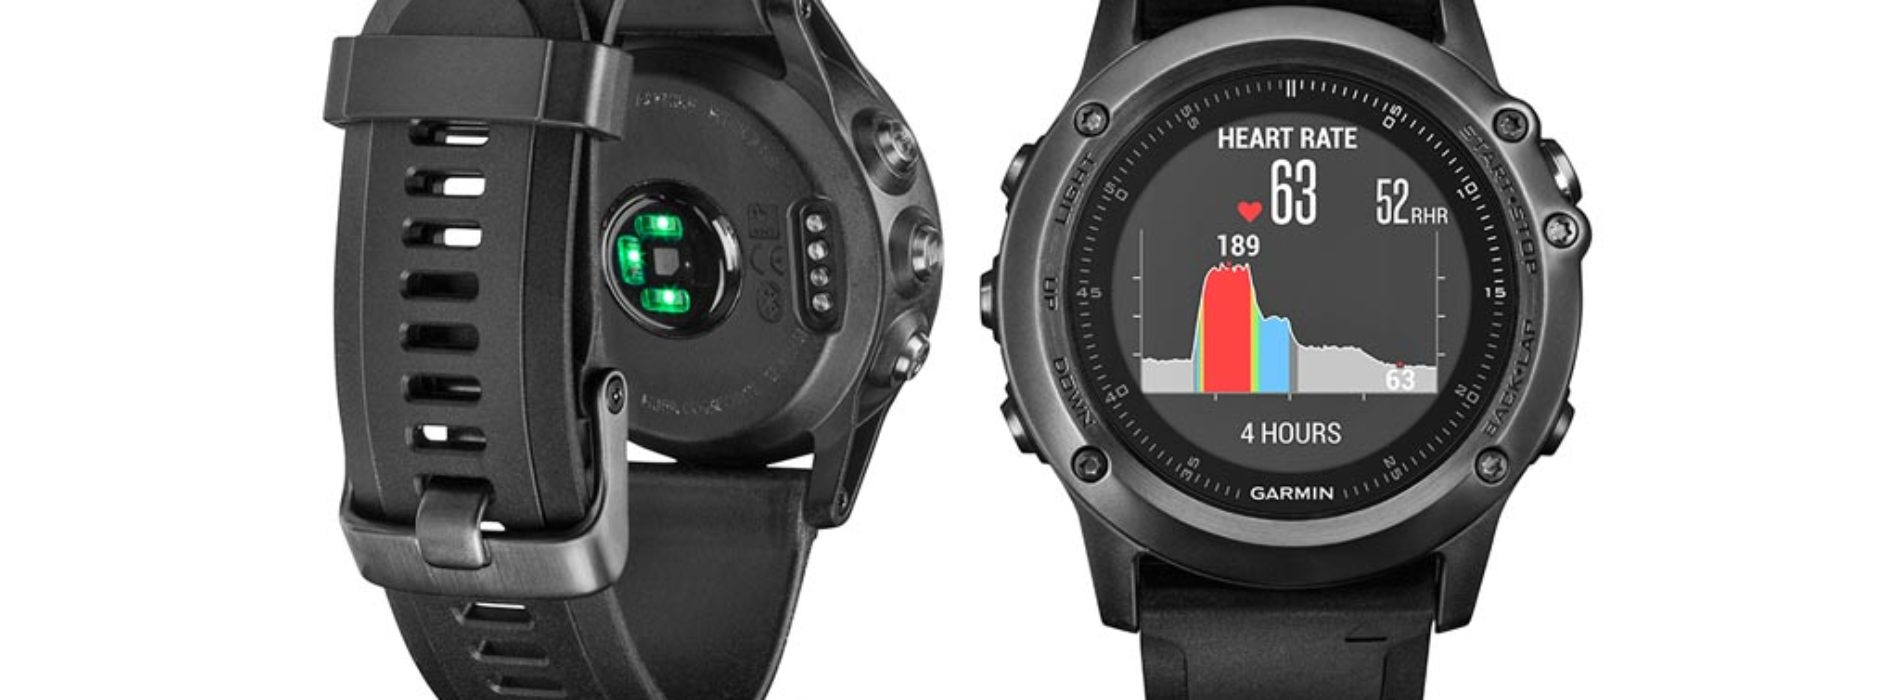 Probamos el Garmin que ha arrasado en Black Friday